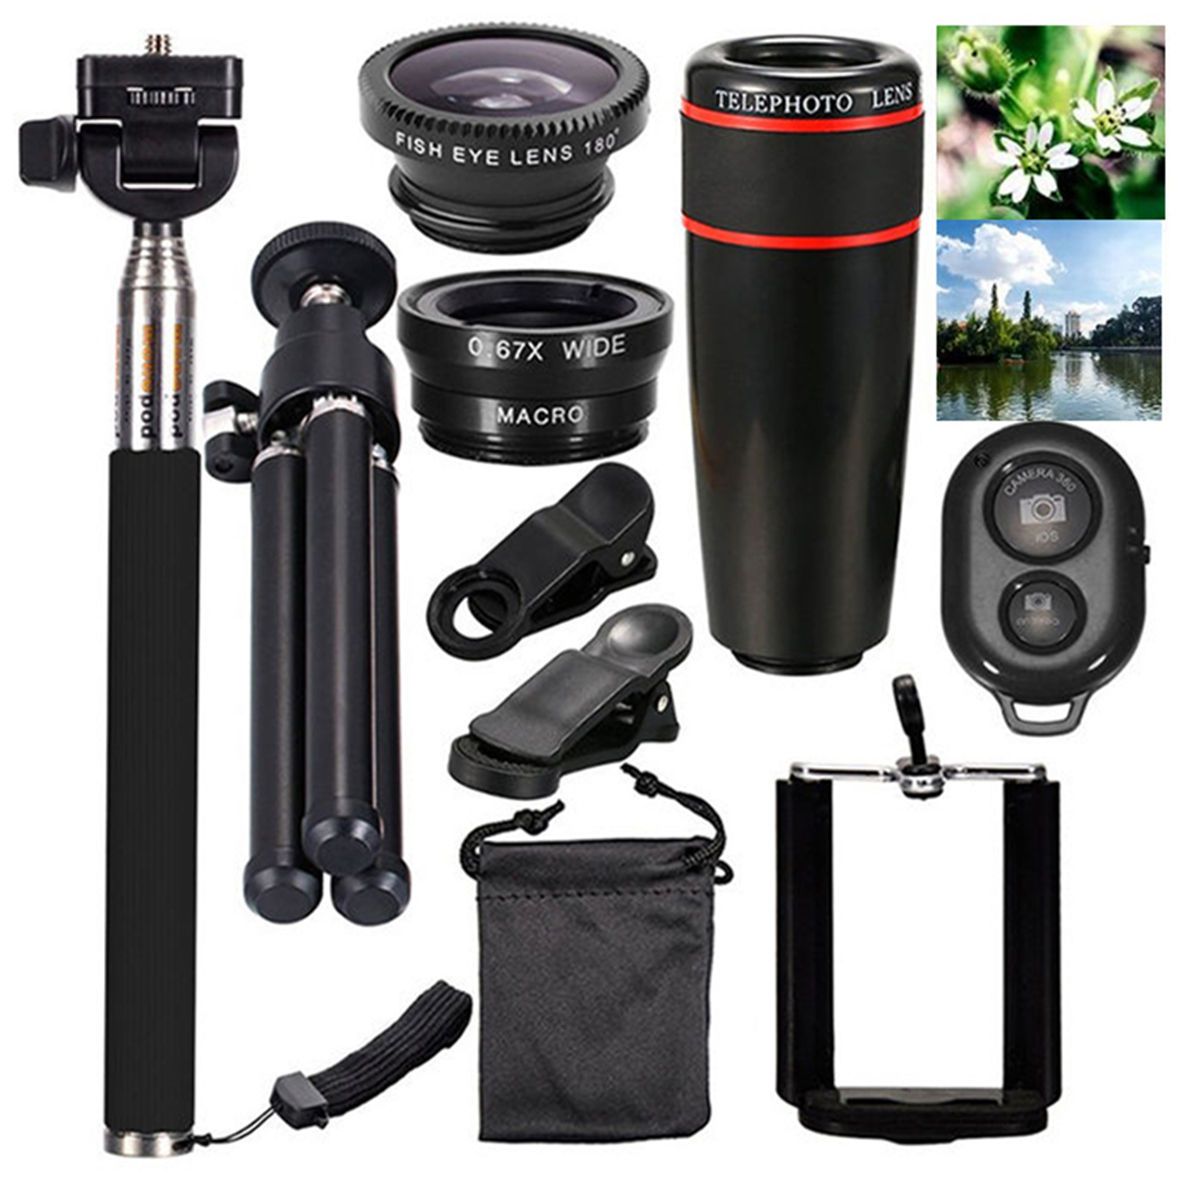 the latest 94e1c 2a23c Details about All Accessories Phone Camera Lens Top Travel Kit For iPhone X  Samsung S9 Note